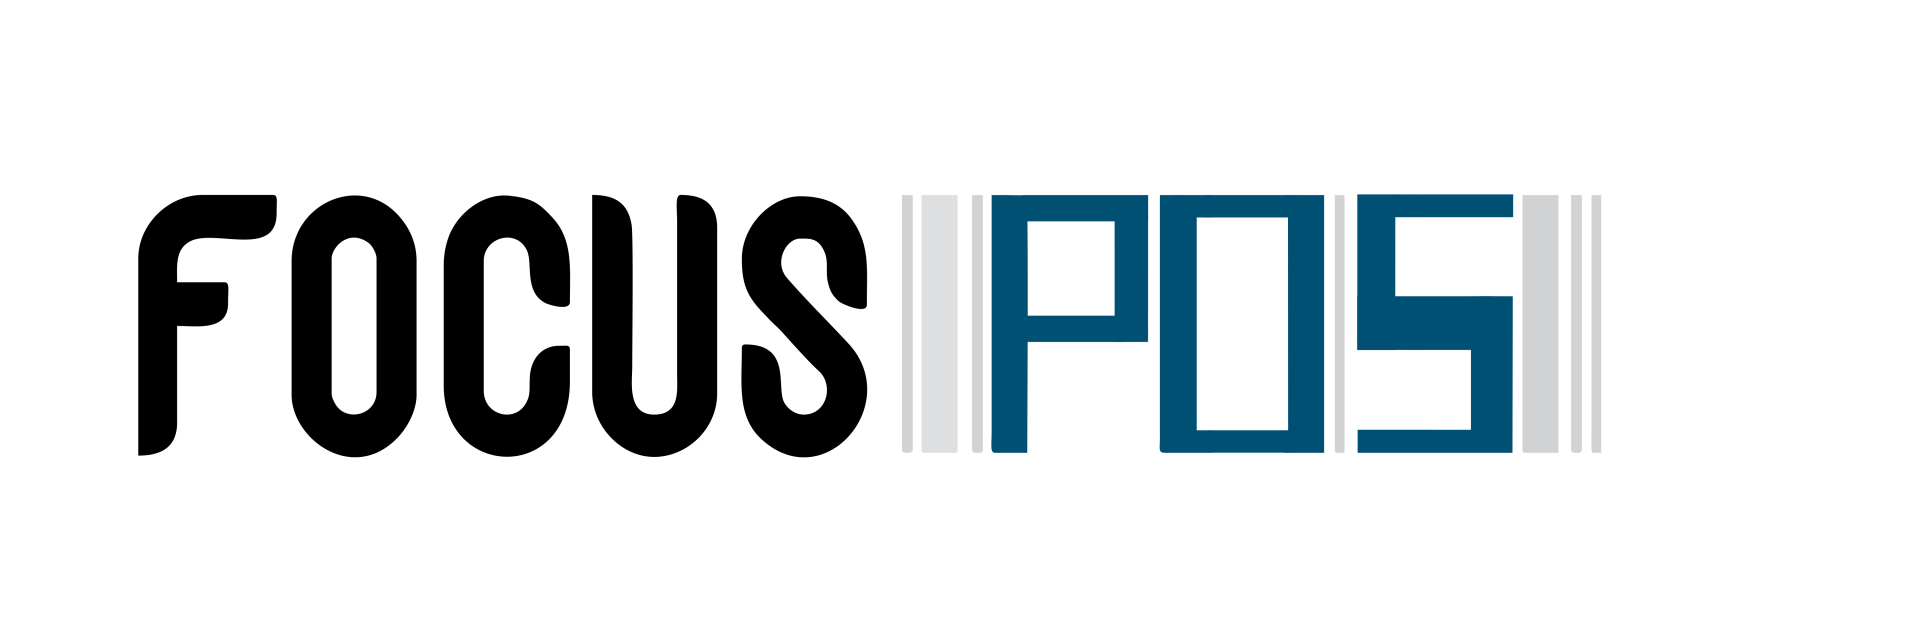 Focus POS Point of Sale Software